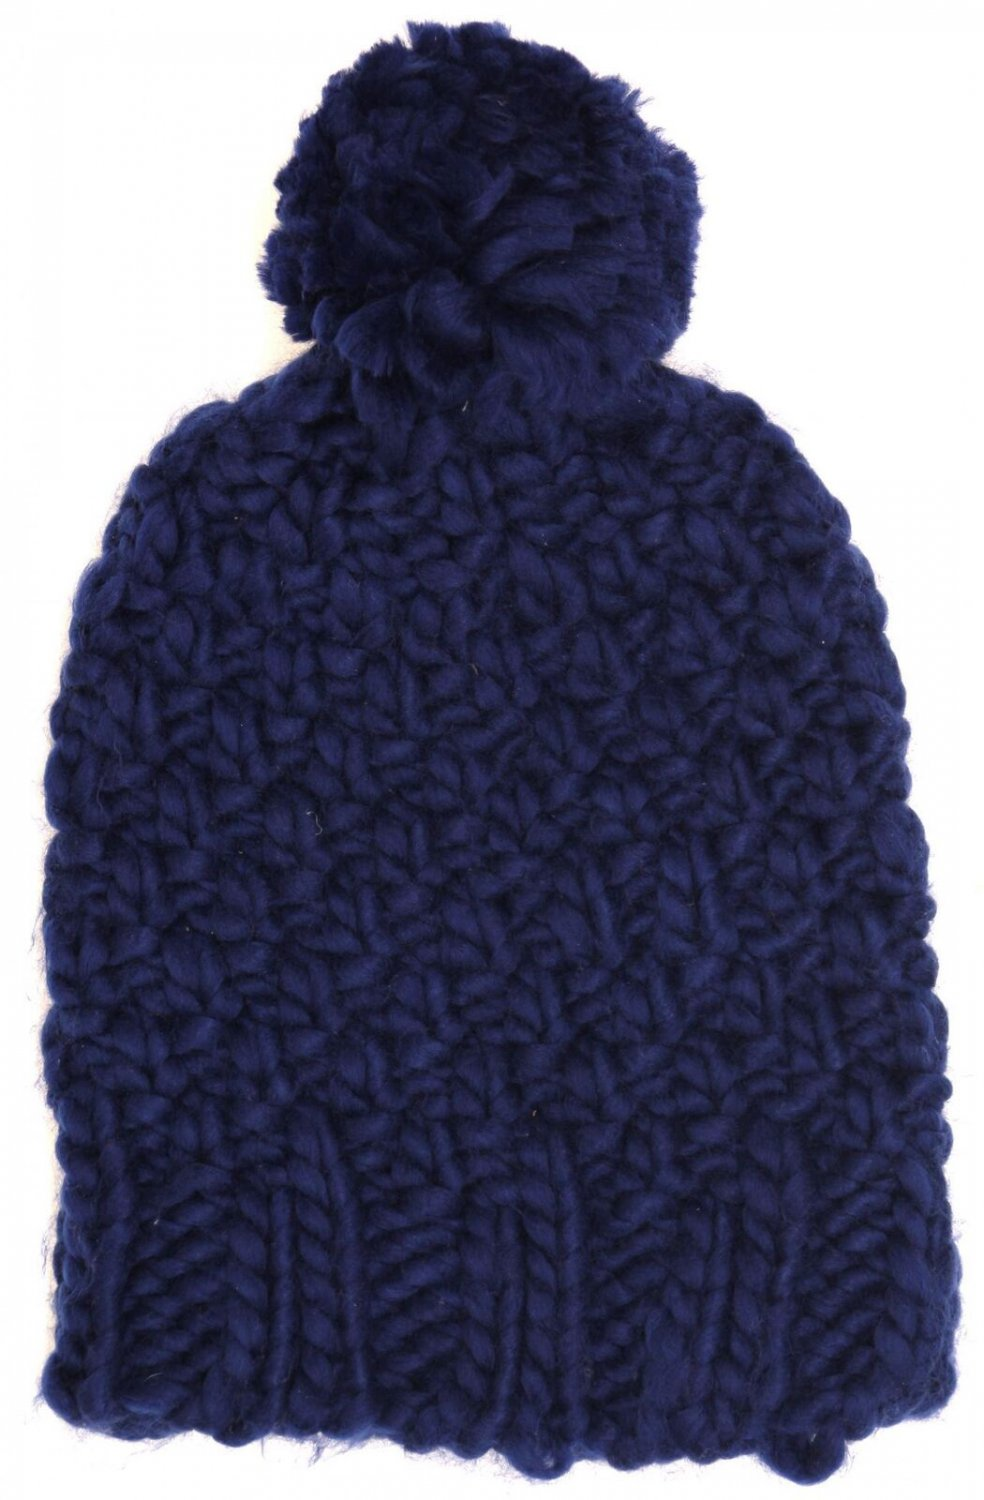 Mossimo Women's Chunky Knit Beanie Blue One Size